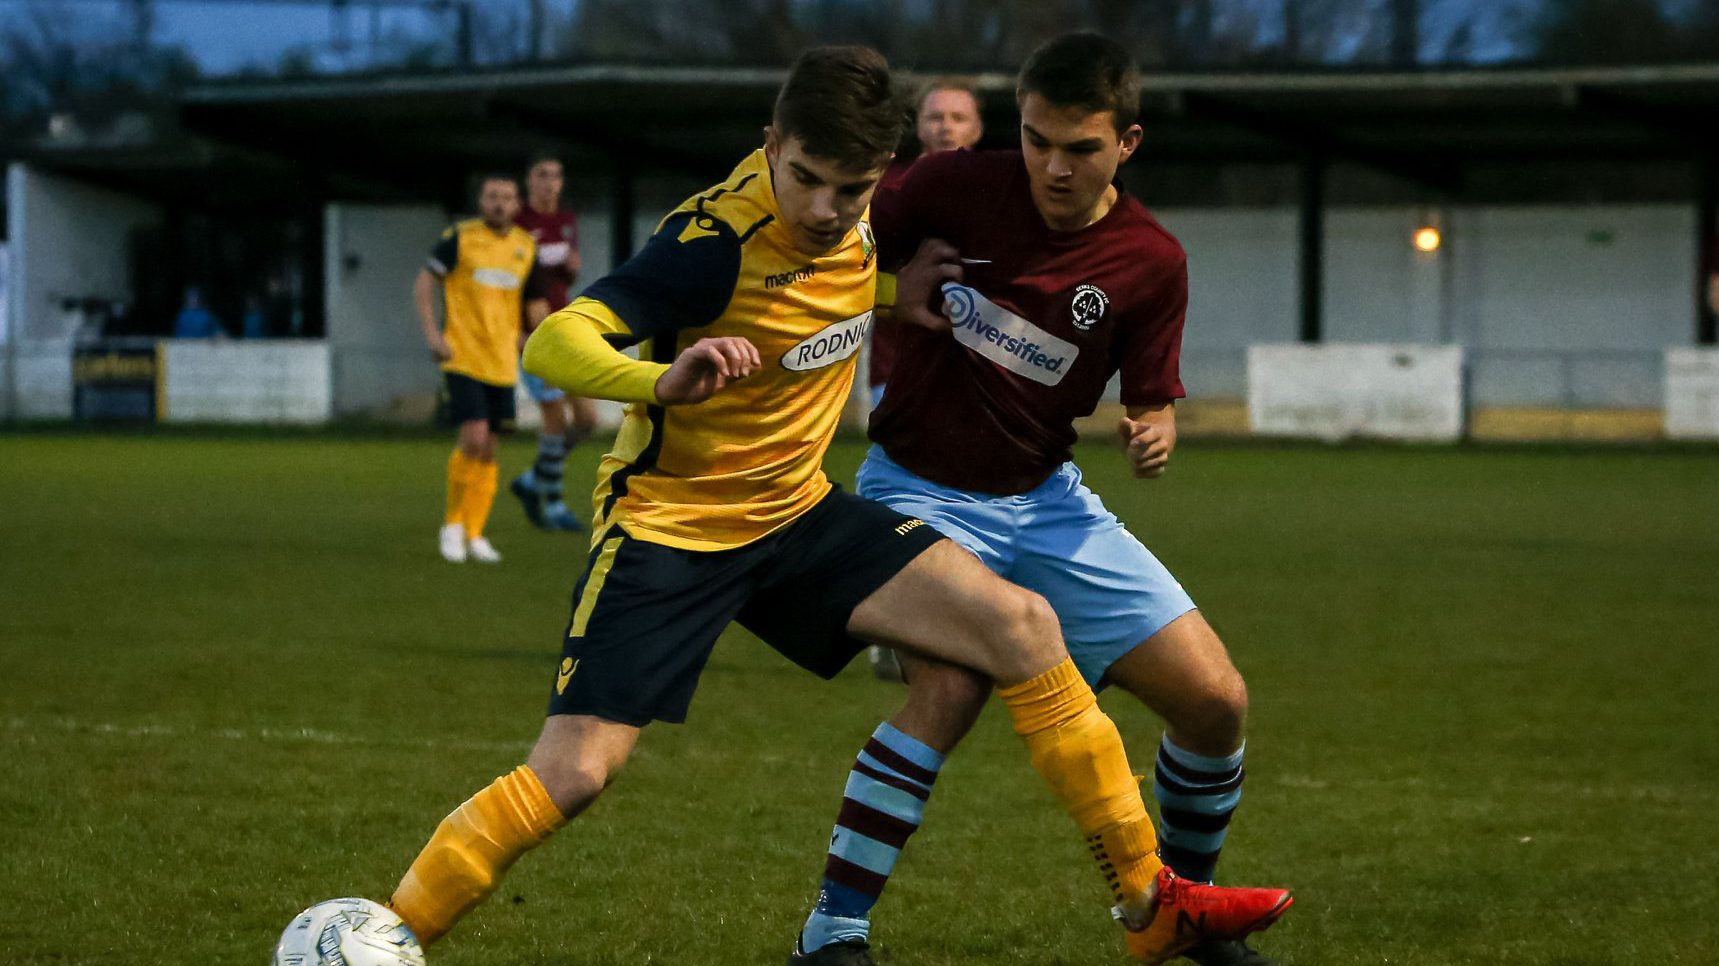 10-man Mortimer hit heights with County Cup victory